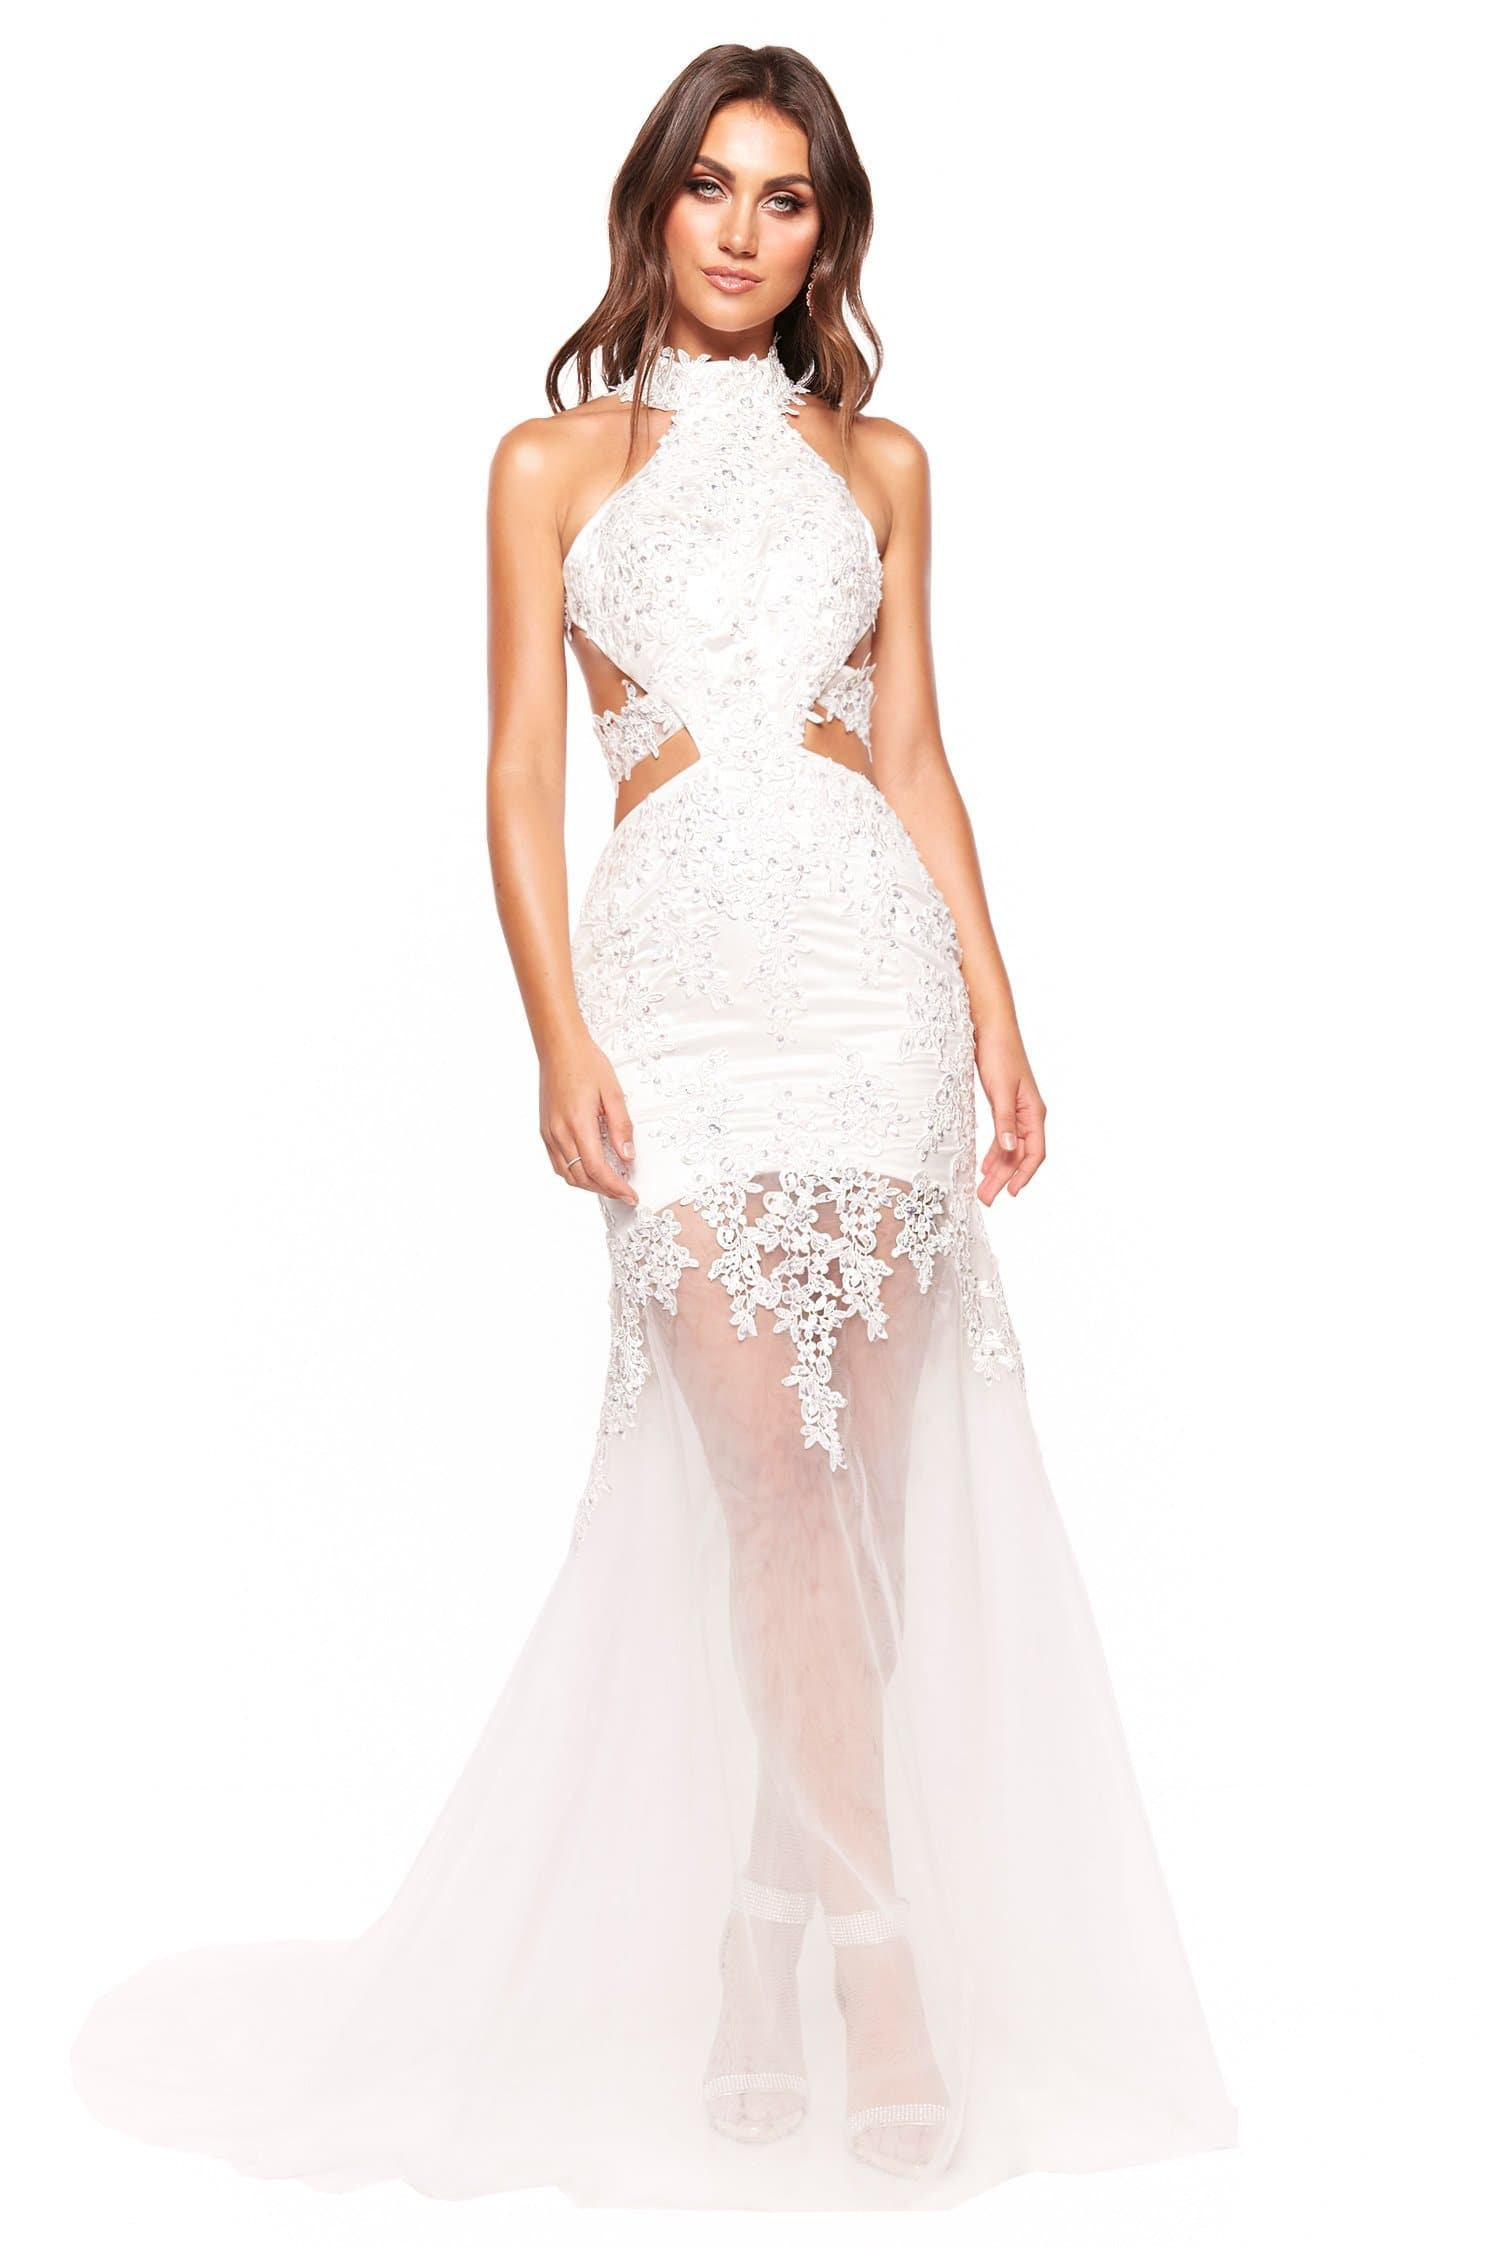 A&N Luxe Ximena - White Beaded Gown with Side Cut Outs and Halter Neck